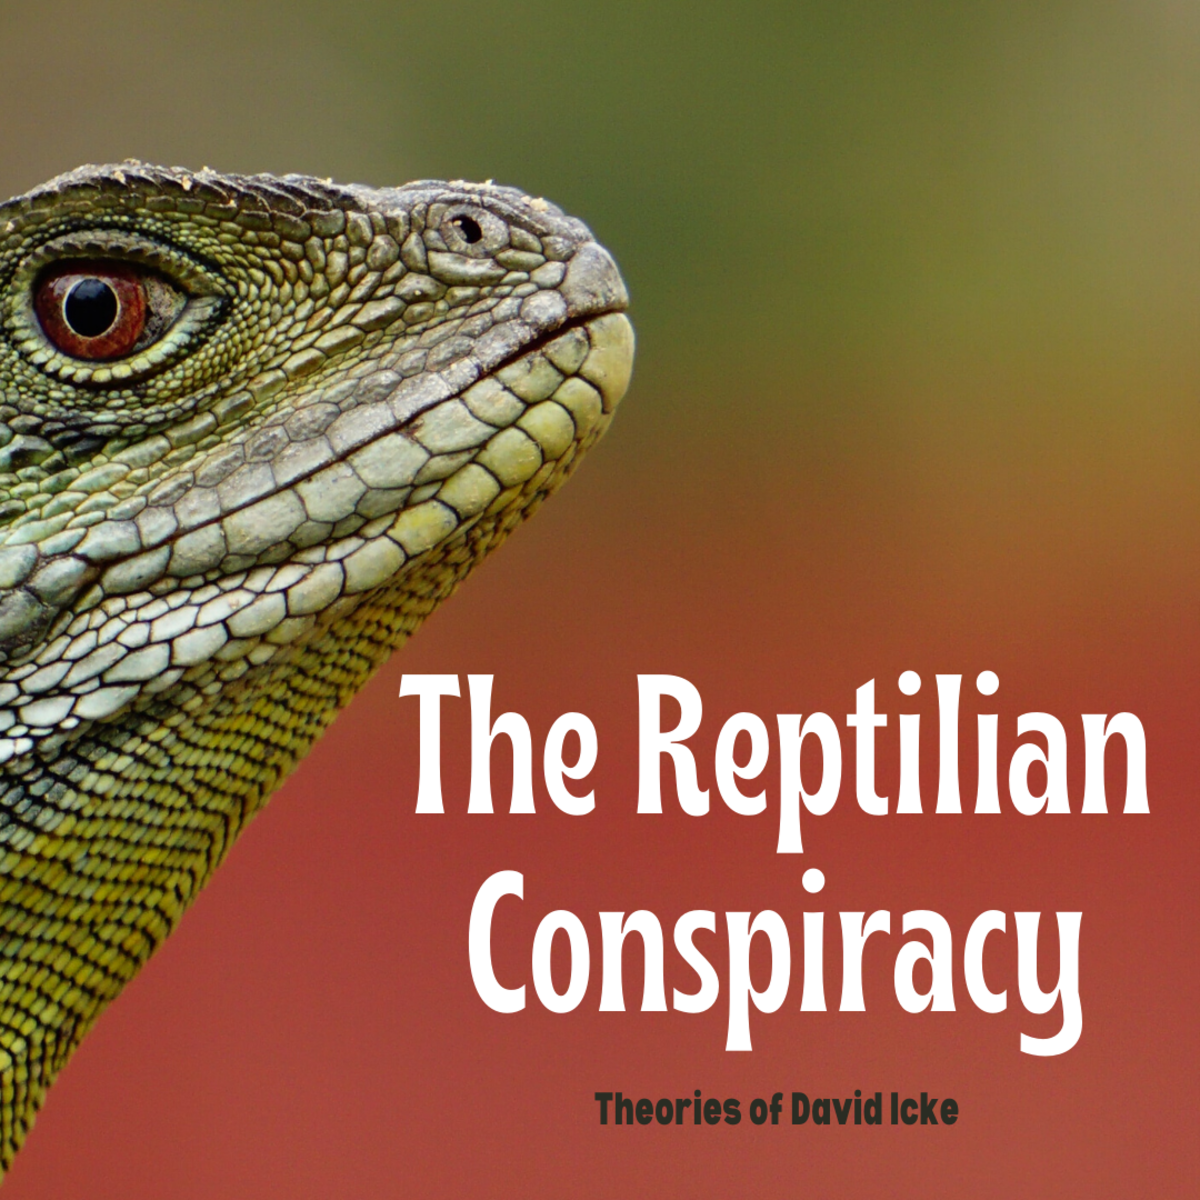 Examine the theories of alternate historian David Icke and other researchers who believe that shapeshifting reptilians have infiltrated human society.